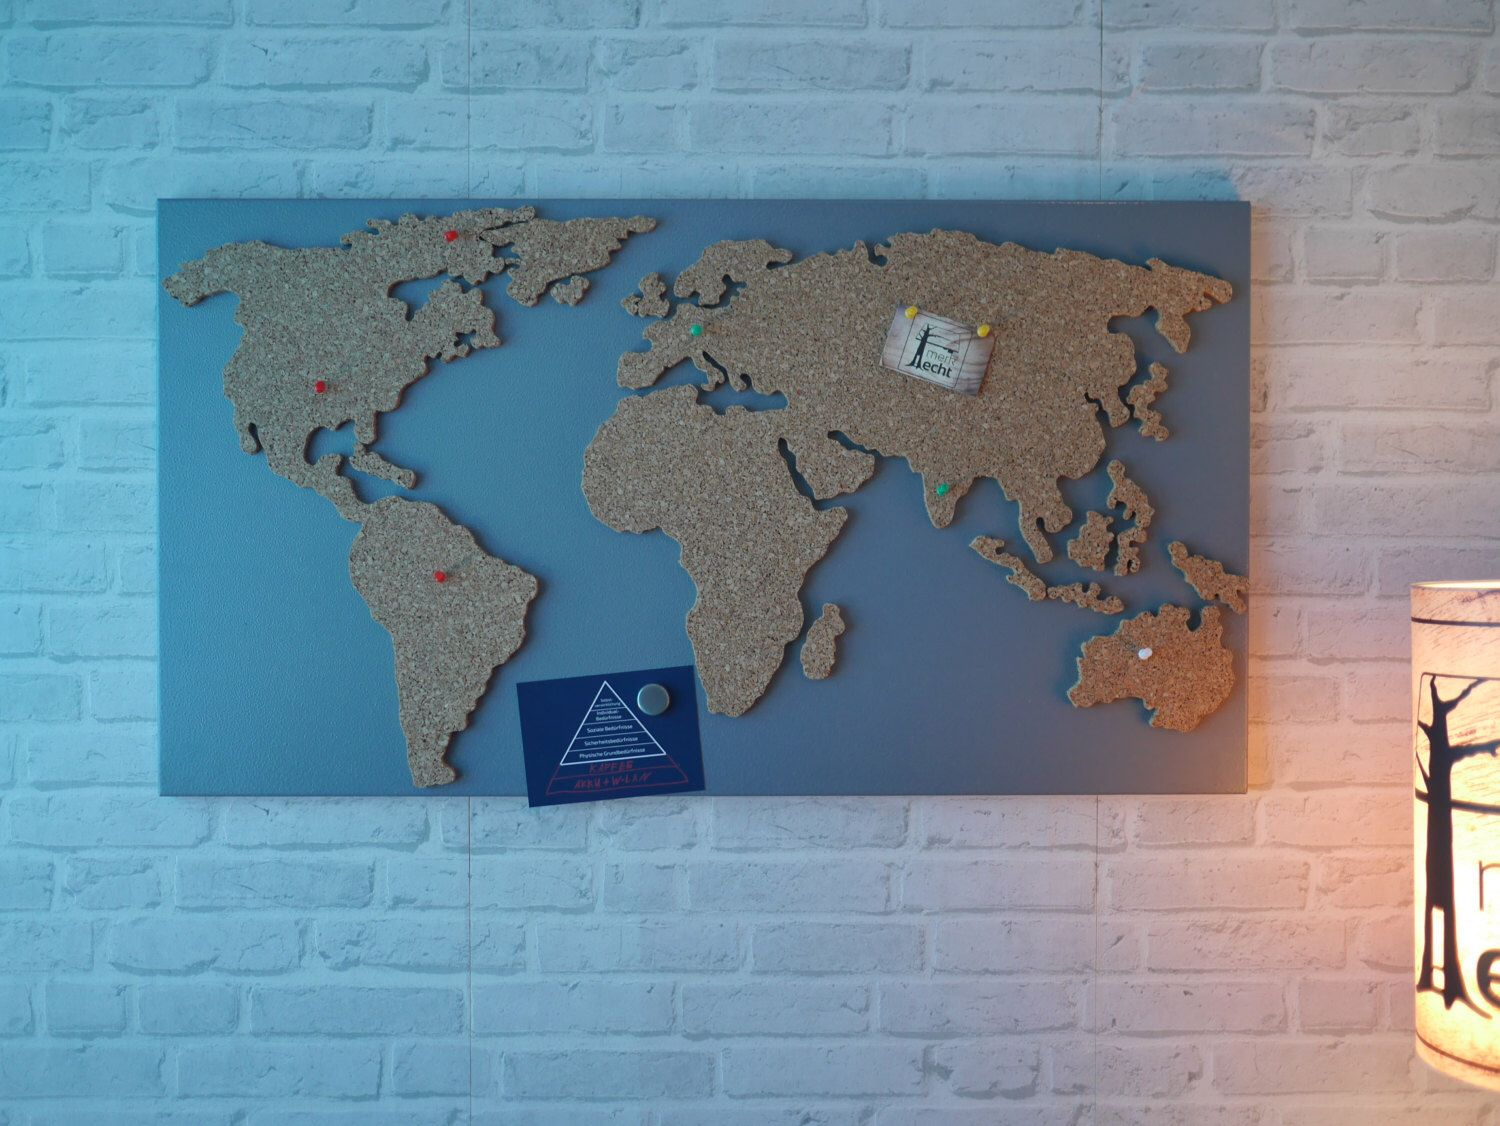 Magnetic cork pinboard as world map 40x20 inch pinterest cork magnetic cork pinboard as world map 40x20 inch by merkecht on etsy httpsetsycalisting453252338magnetic cork pinboard as world map gumiabroncs Choice Image